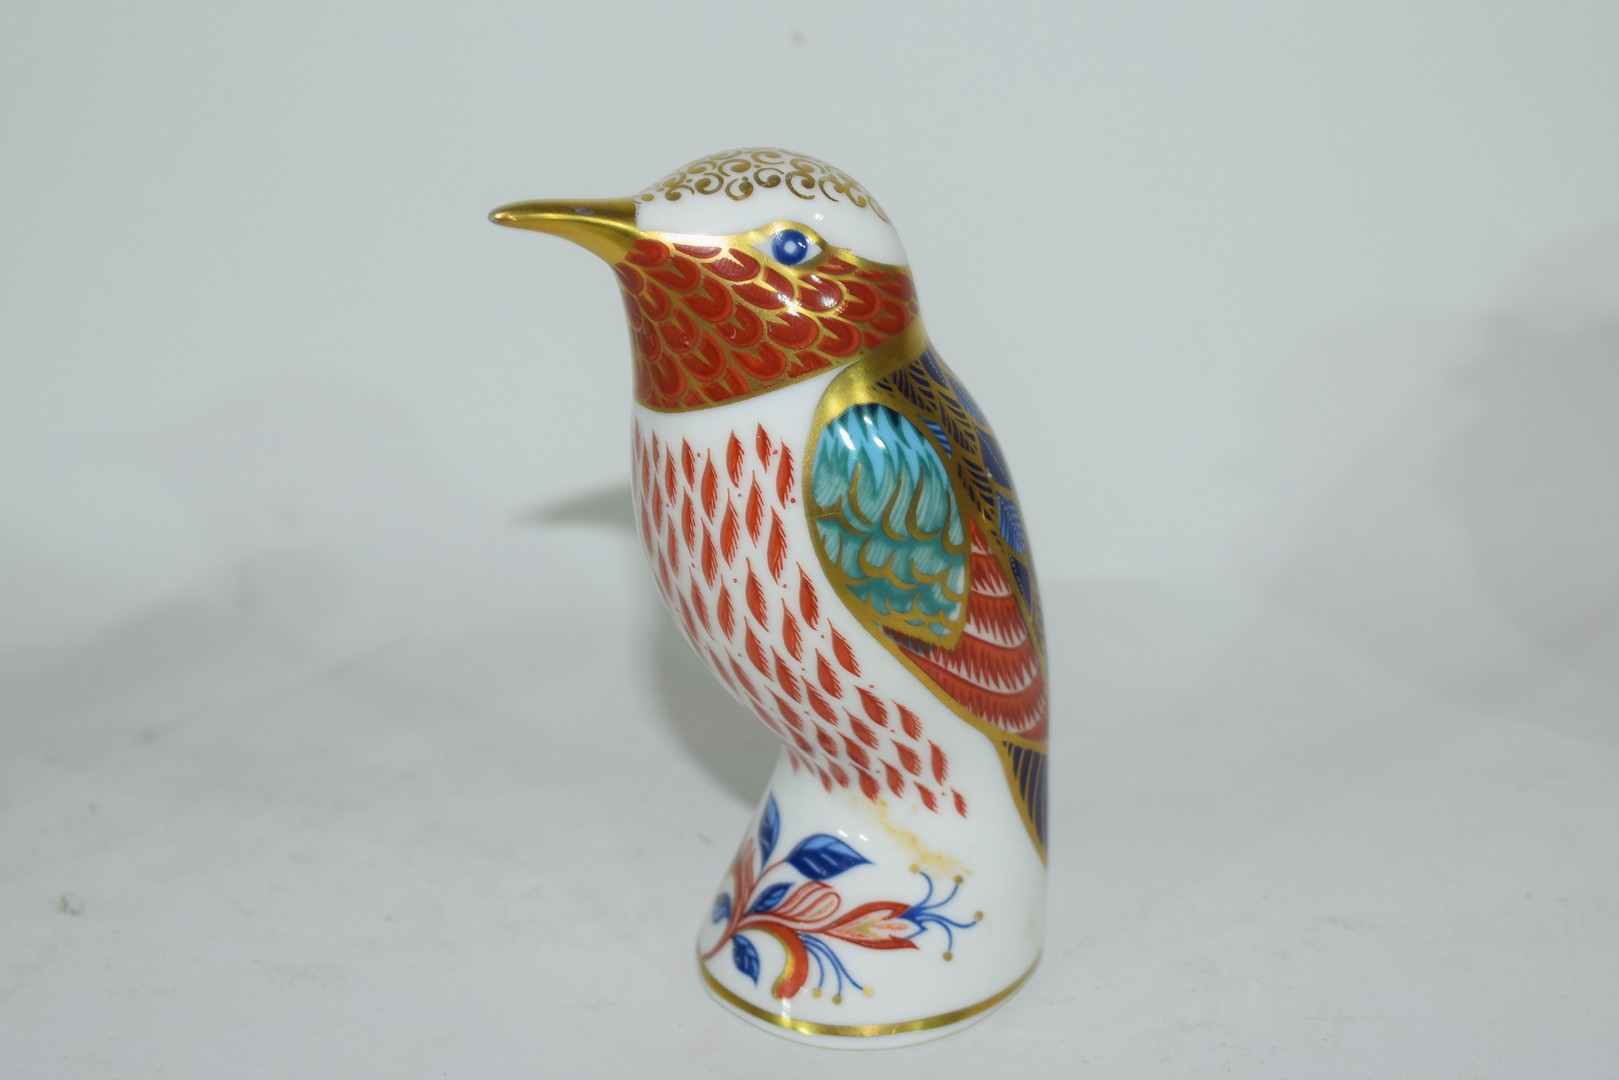 Group of Royal Crown Derby paperweights - Image 5 of 8